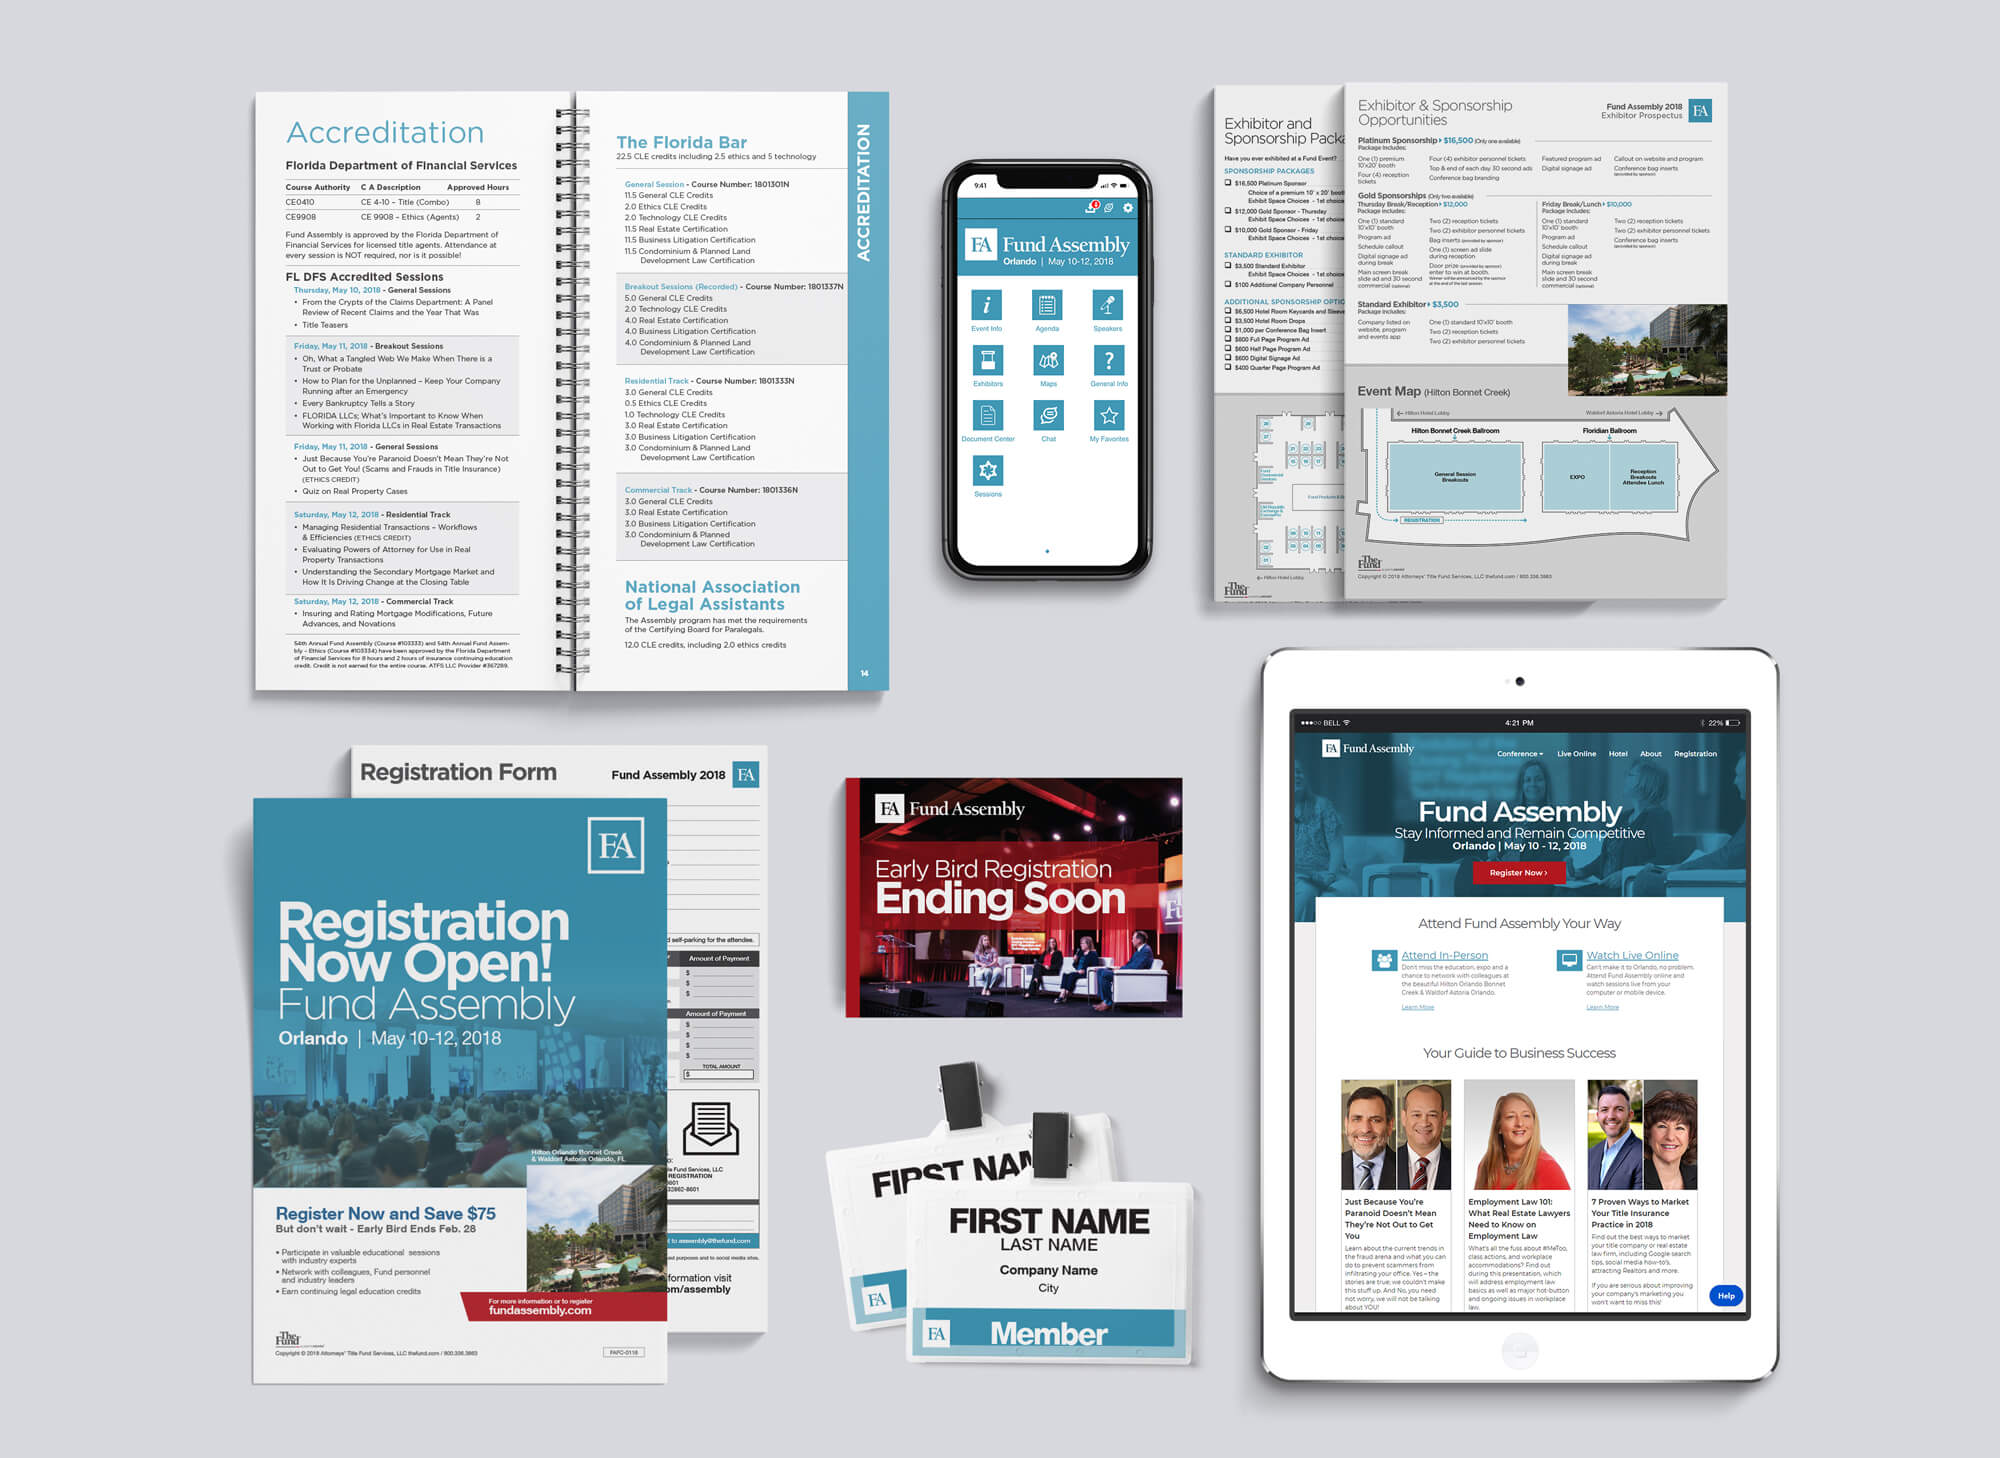 Fund Assembly Event Marketing Collateral